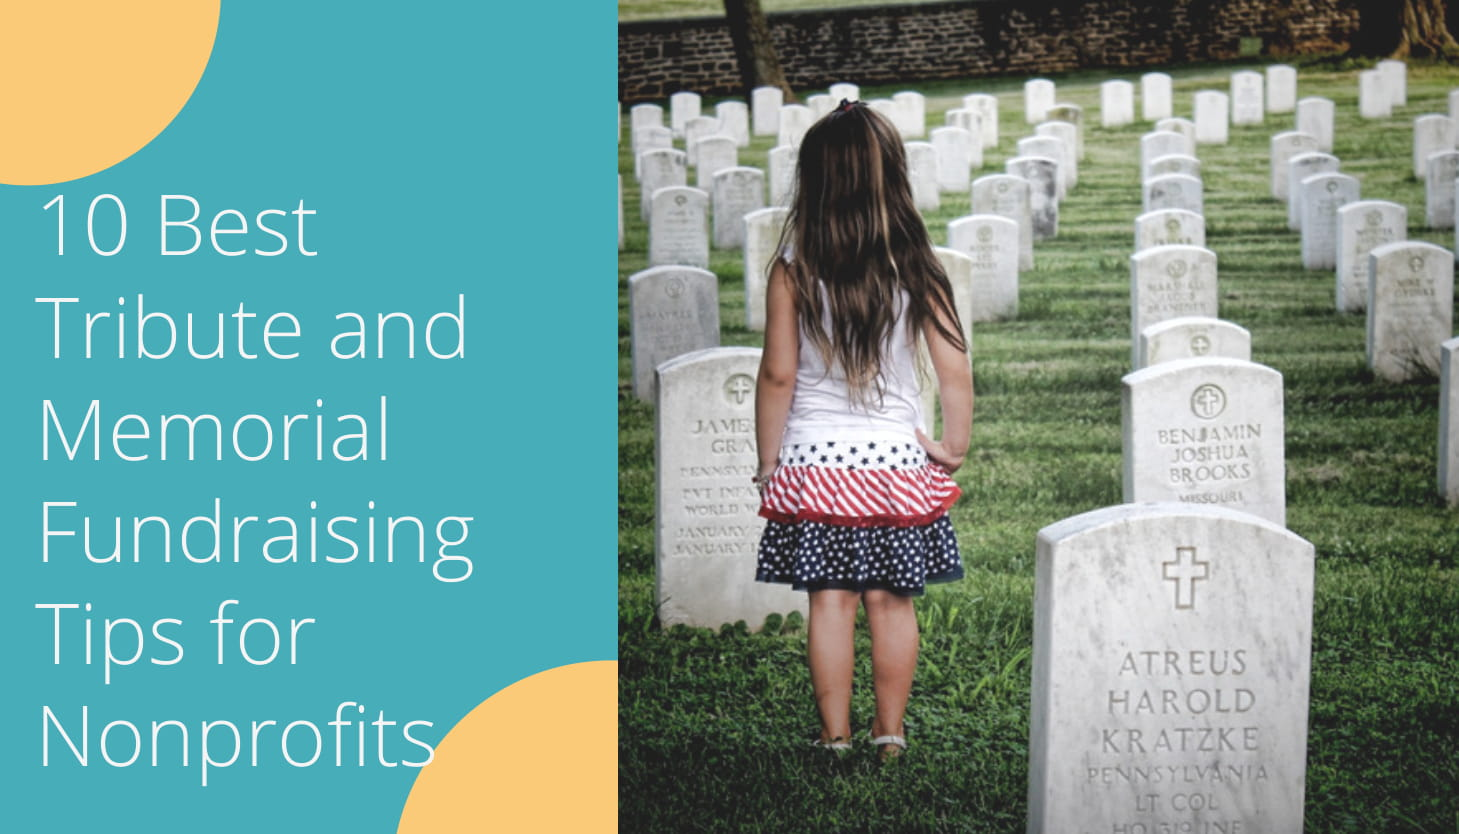 10 Best Tribute and Memorial Fundraising Tips for Nonprofits